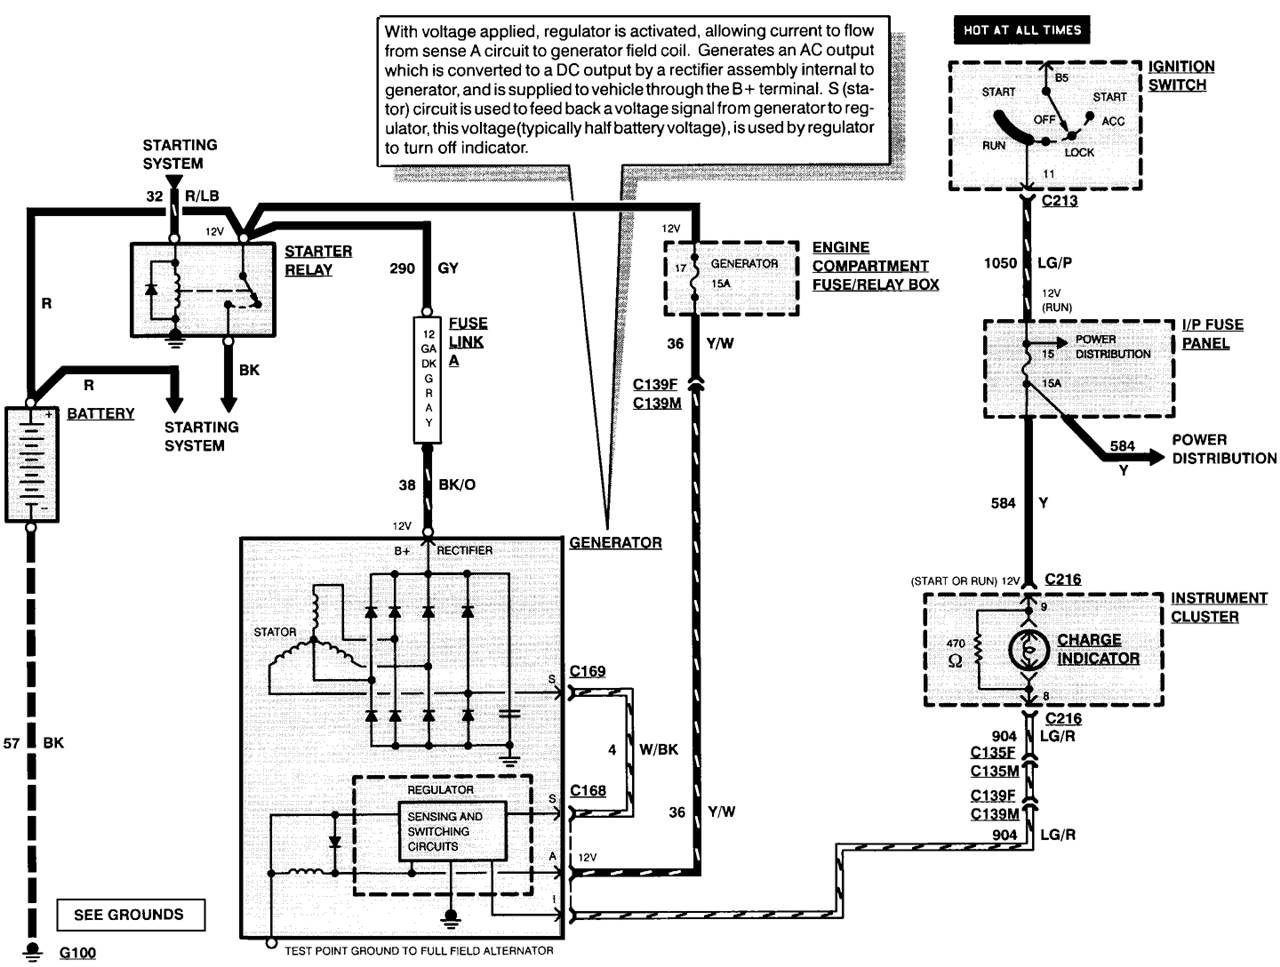 Ford alternator wiring diagram internal regulator?resized665%2C502 mopar wiring diagram powerflex 755 wiring diagrams \u2022 free wiring Wiring Harness Diagram at virtualis.co